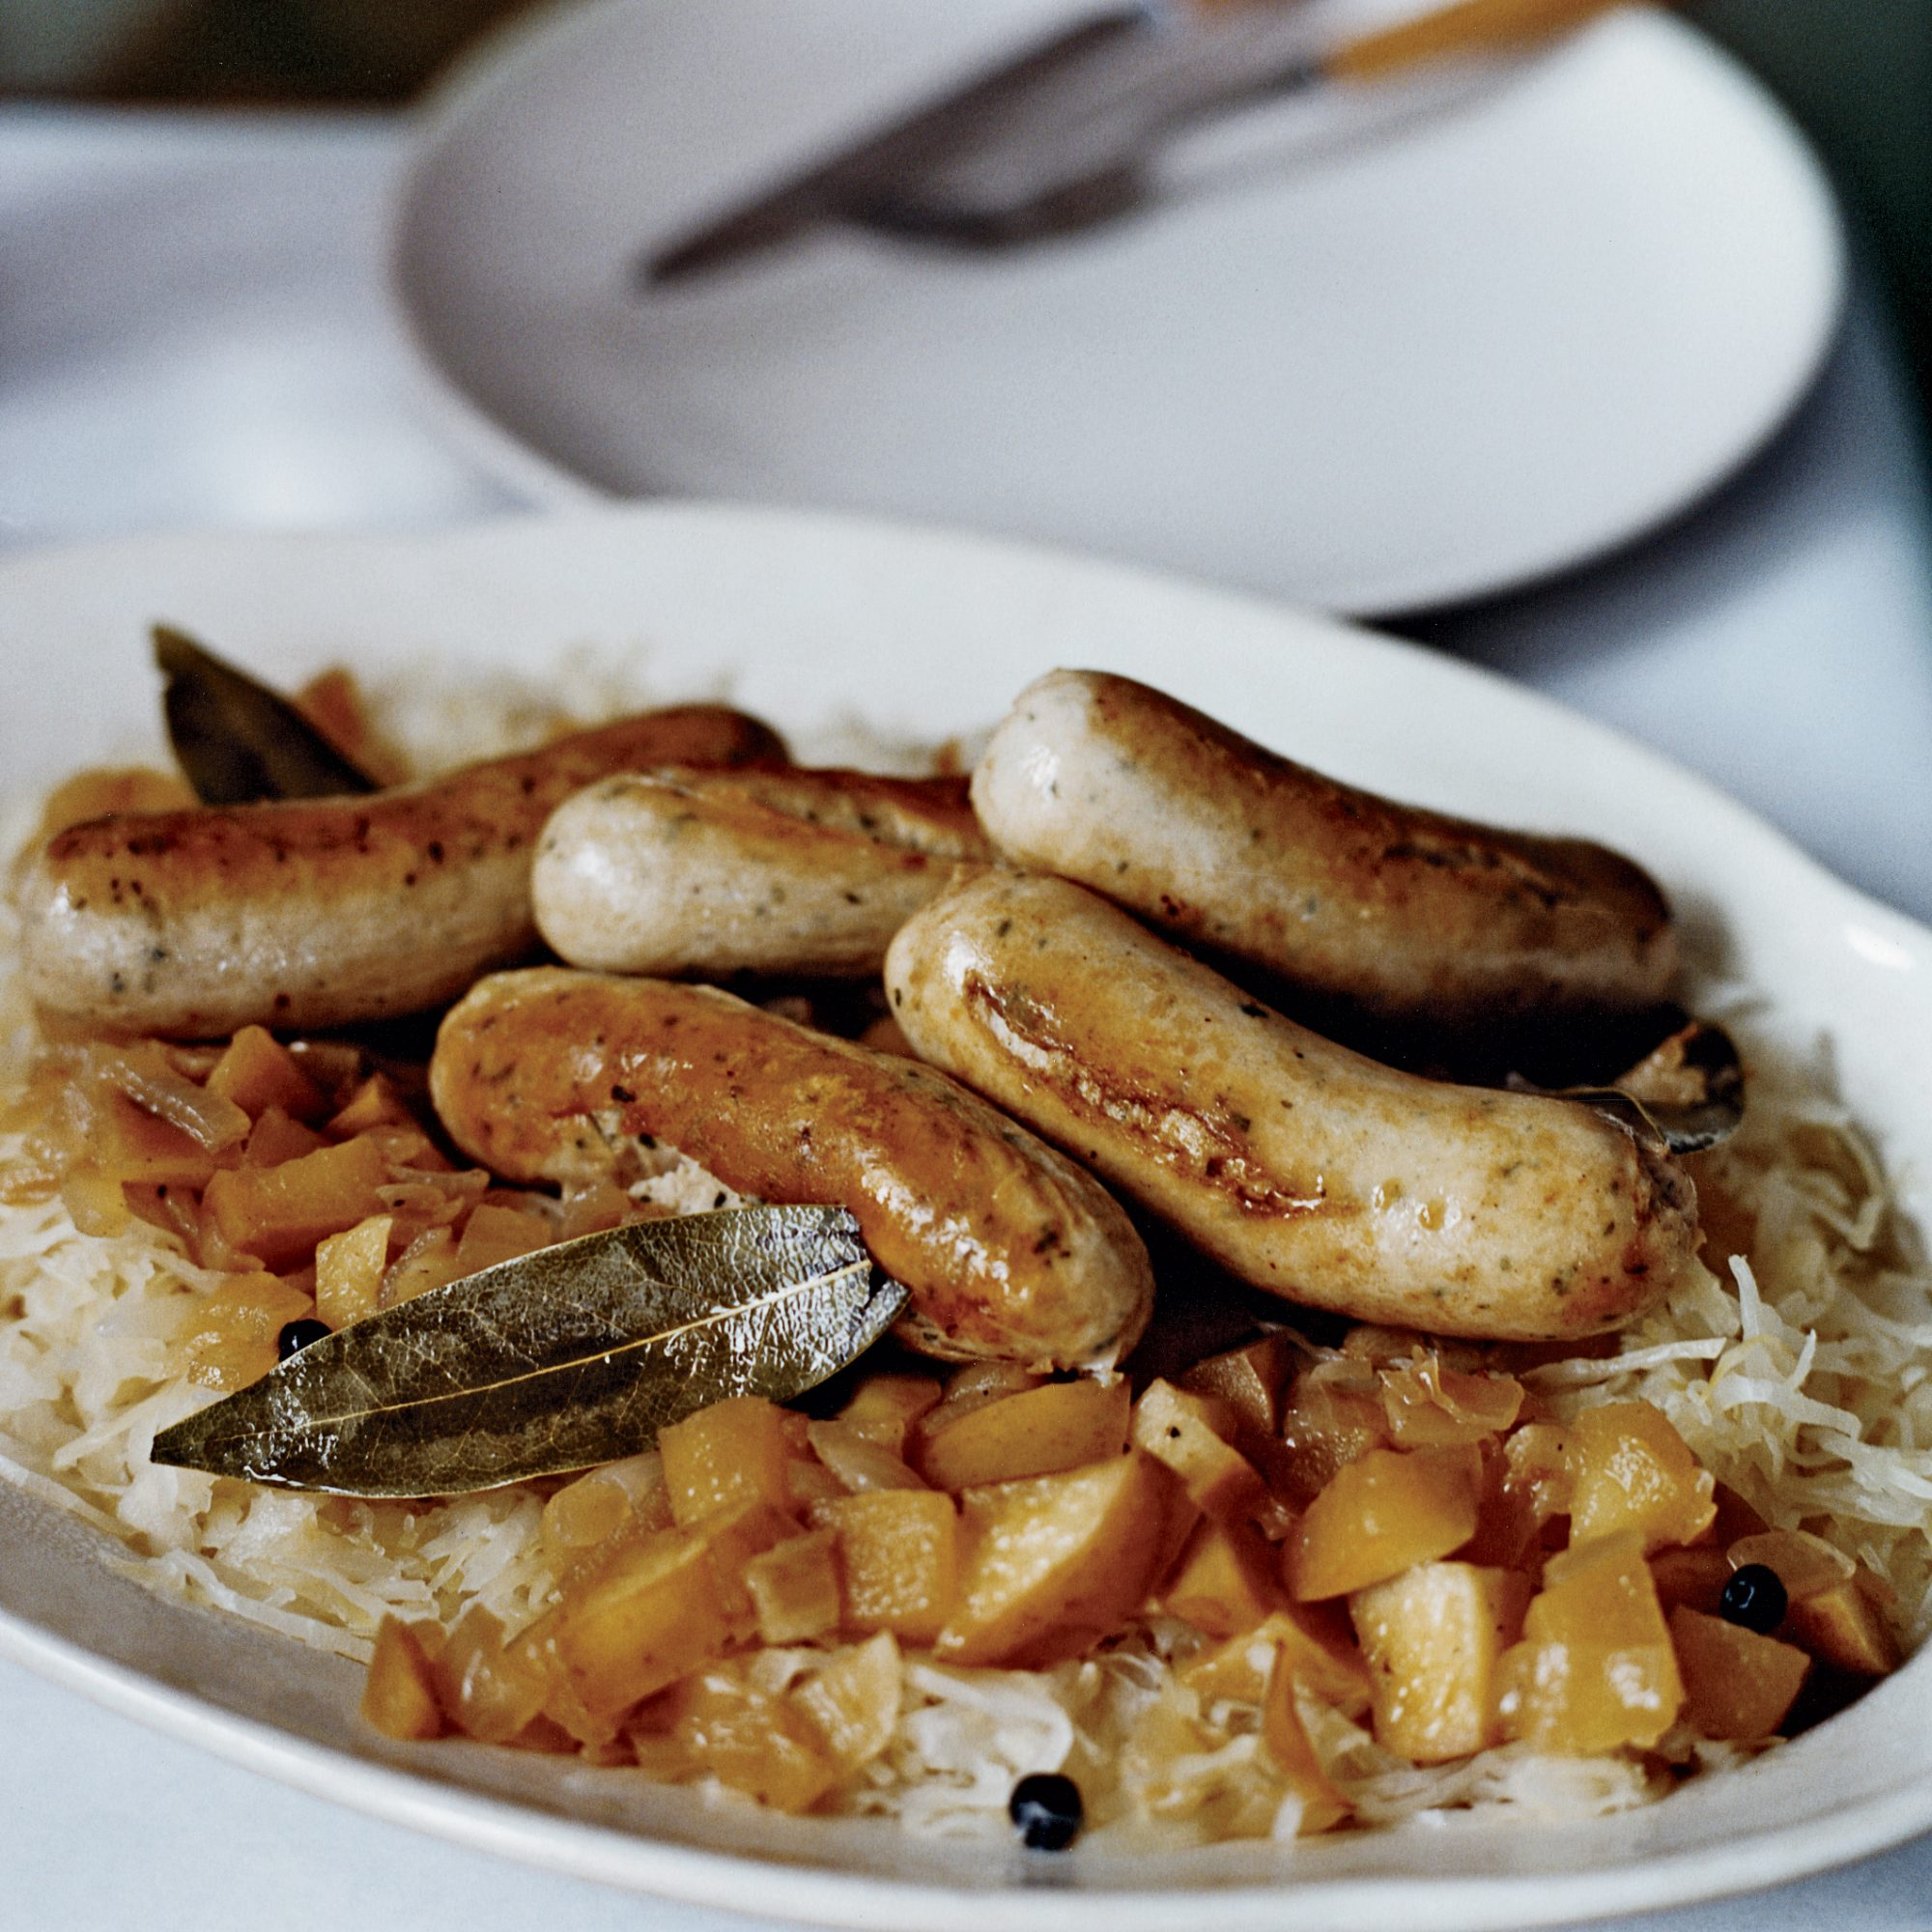 Sautéed German Sausages with Bacon and Apple Sauerkraut